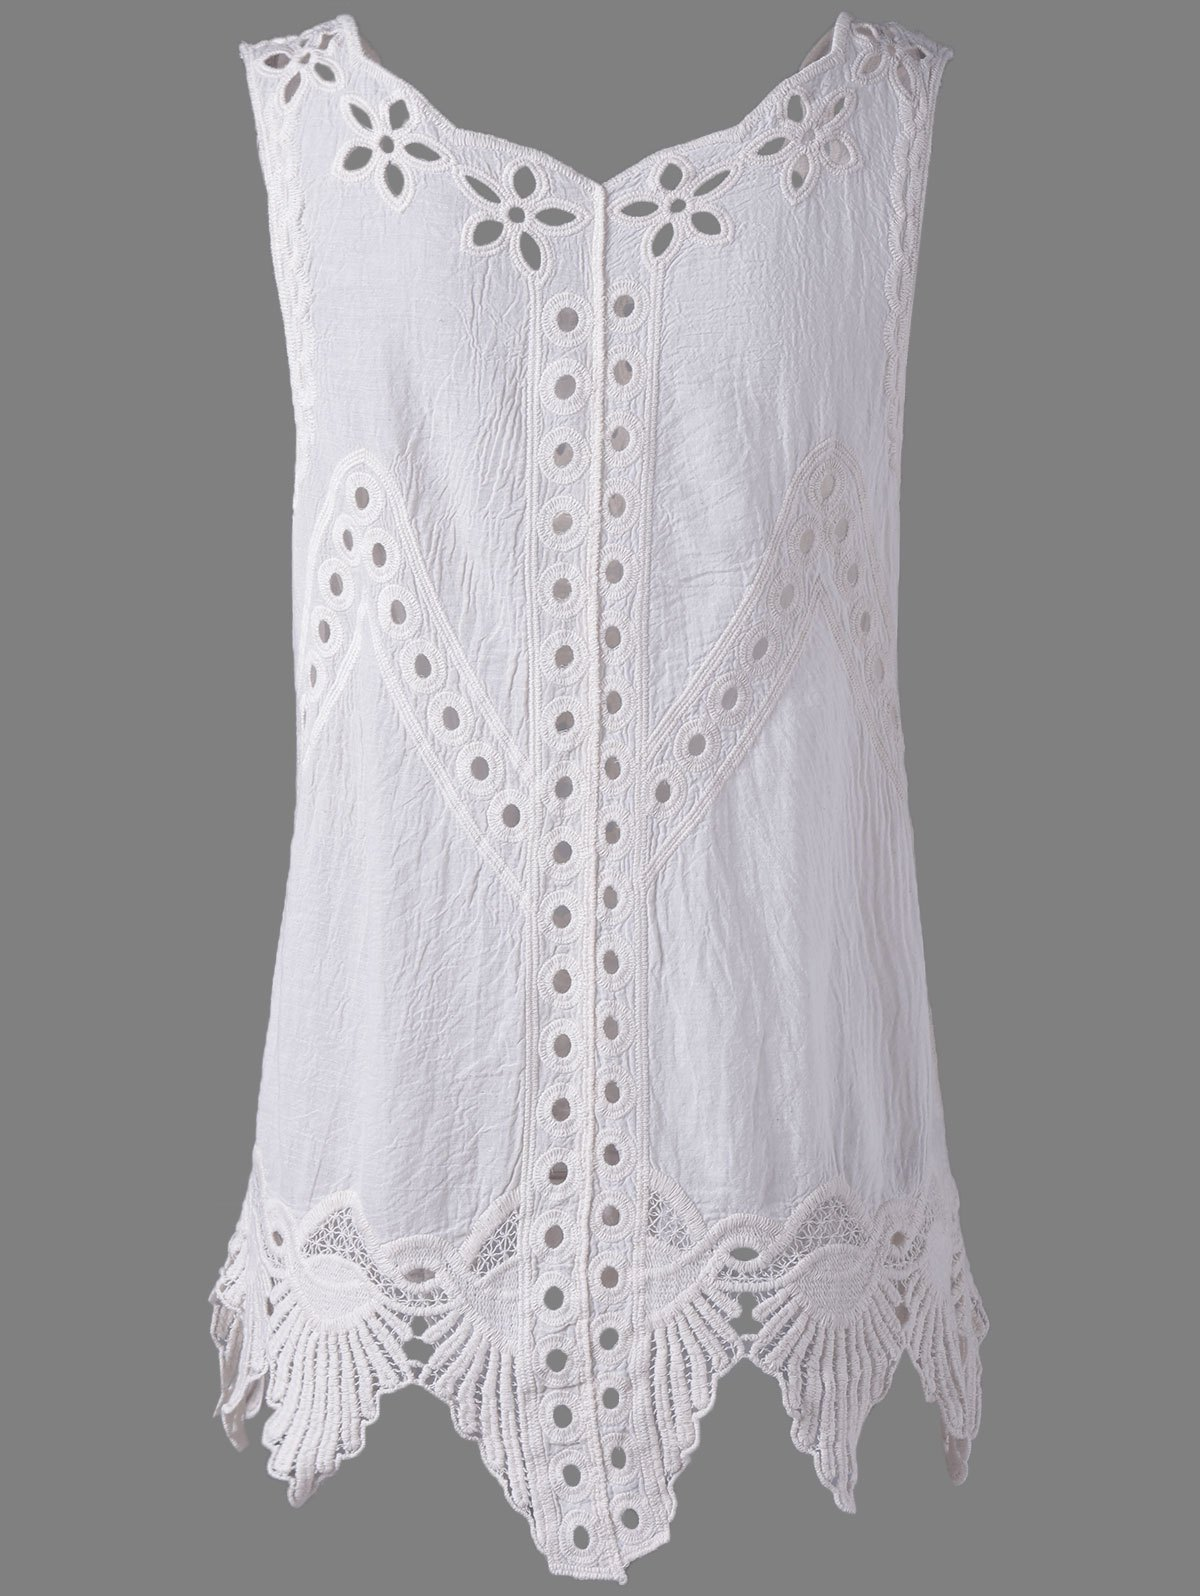 Bohemian Women's Scoop Neck Solid Color Crochet Sleeveless Blouse - WHITE ONE SIZE